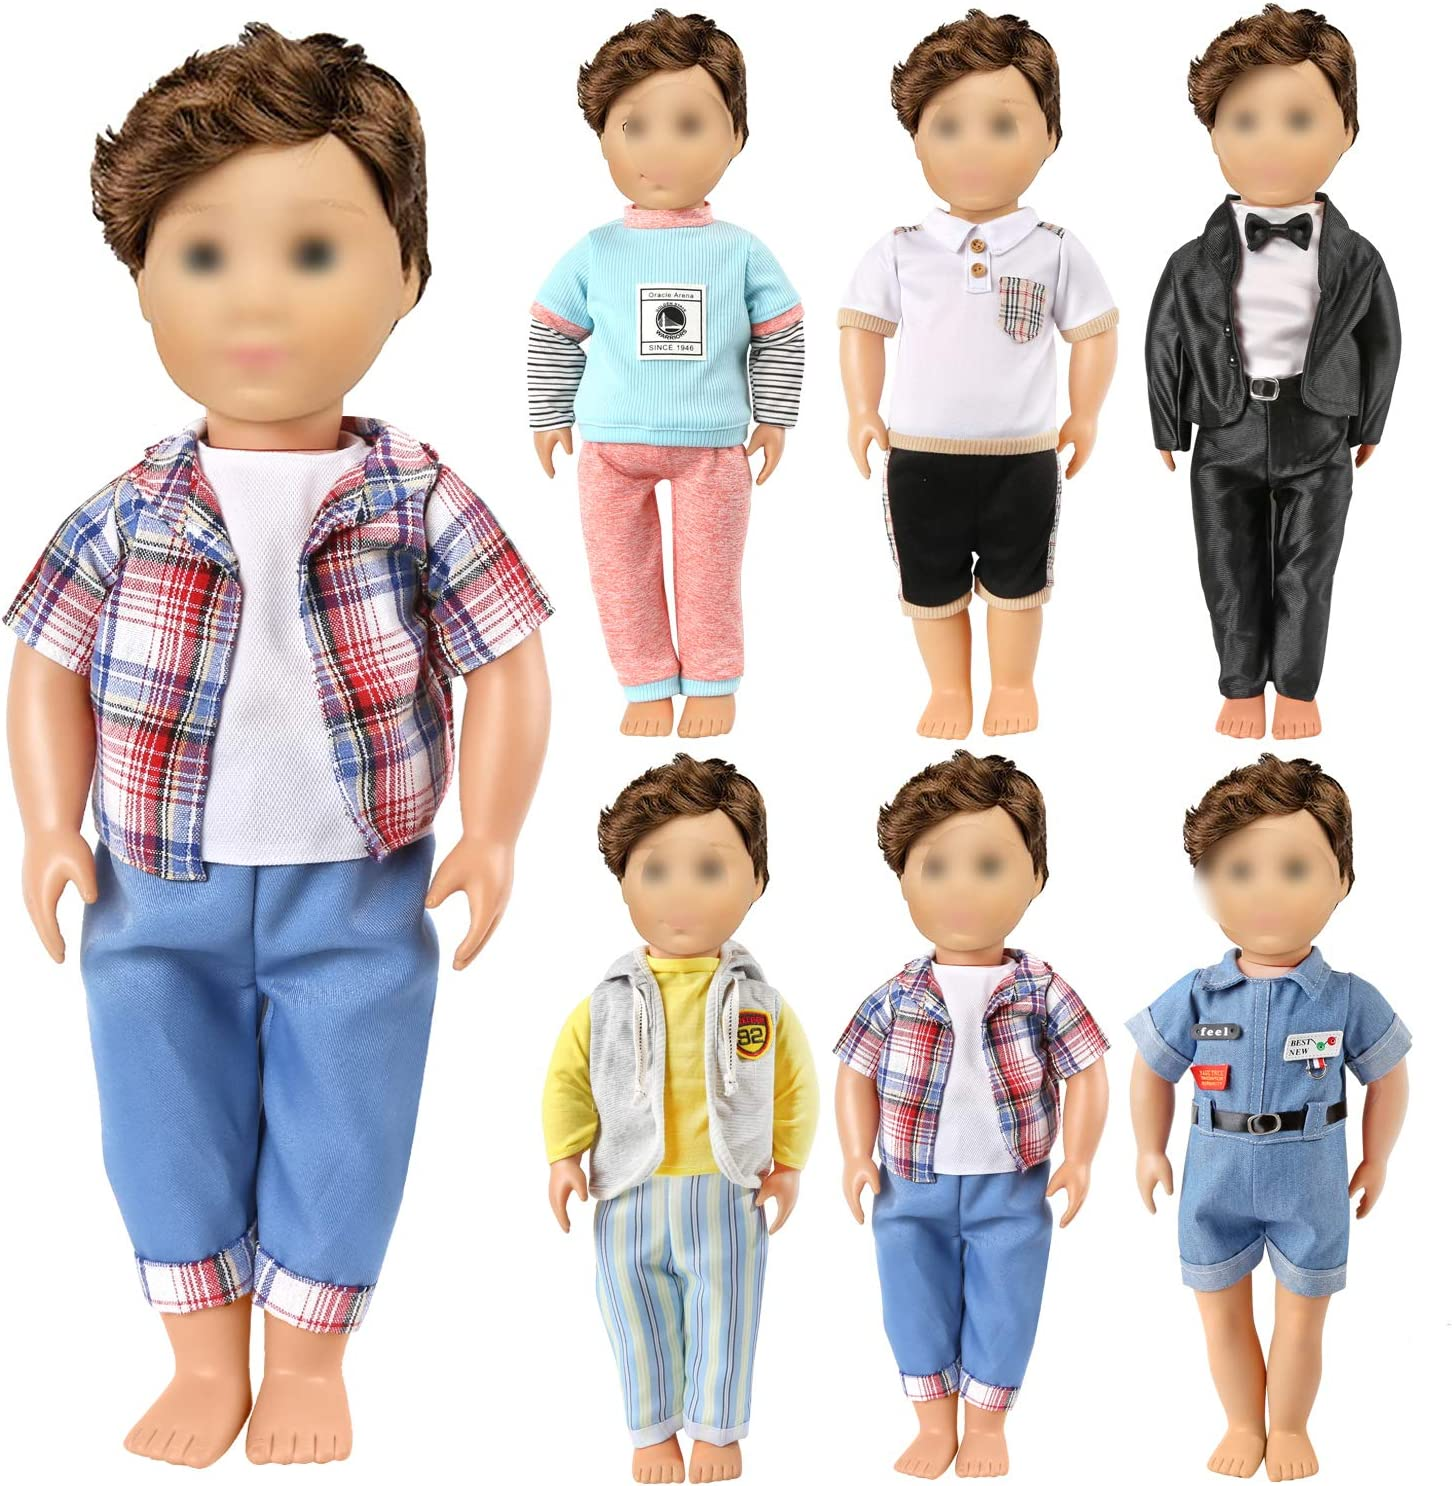 KYToy American 18 Inch Boy Ranking TOP2 Doll Includ Clothes and Reservation - Accessories